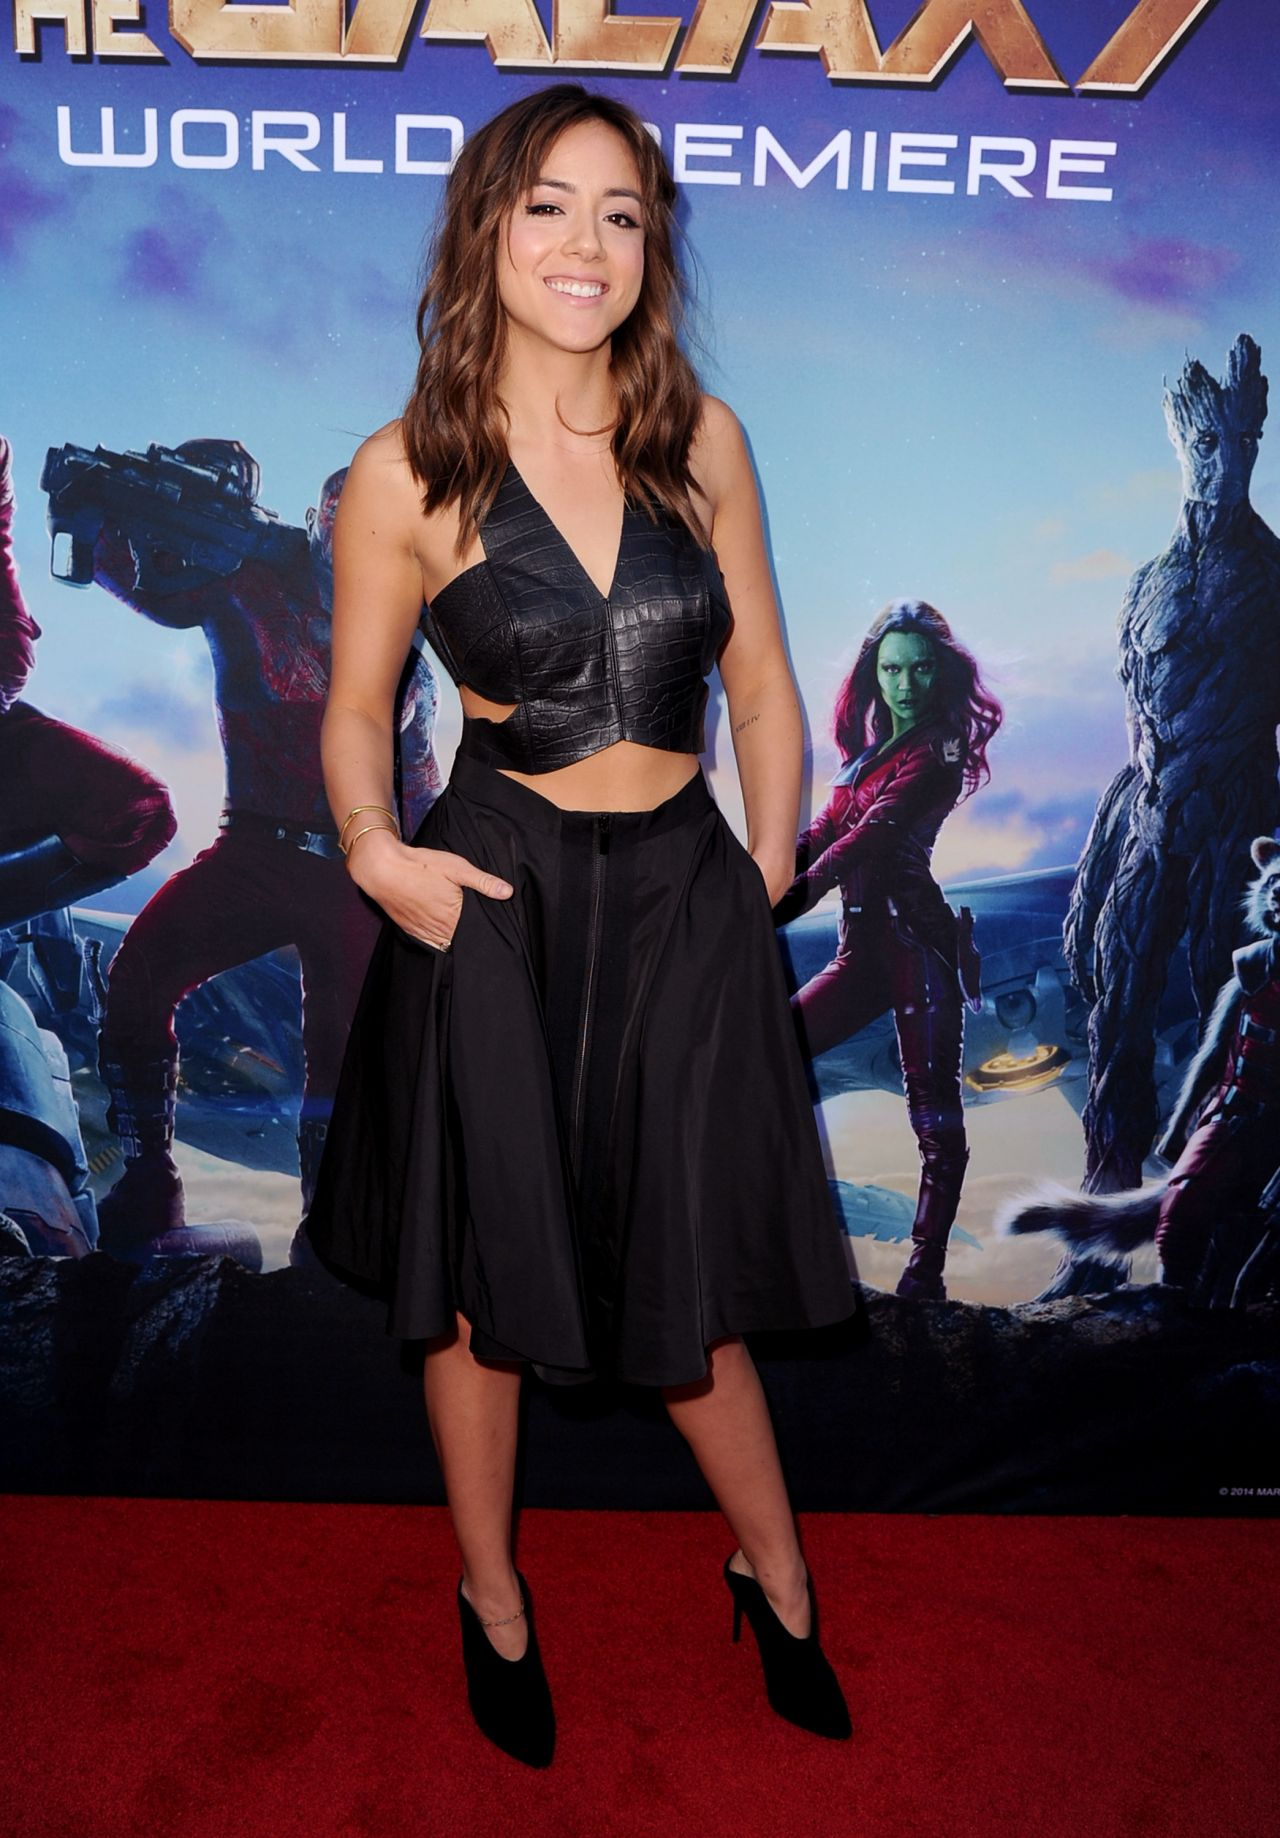 Chloe Bennett at Guardians of the Galaxy premiere www.scifiempire.net